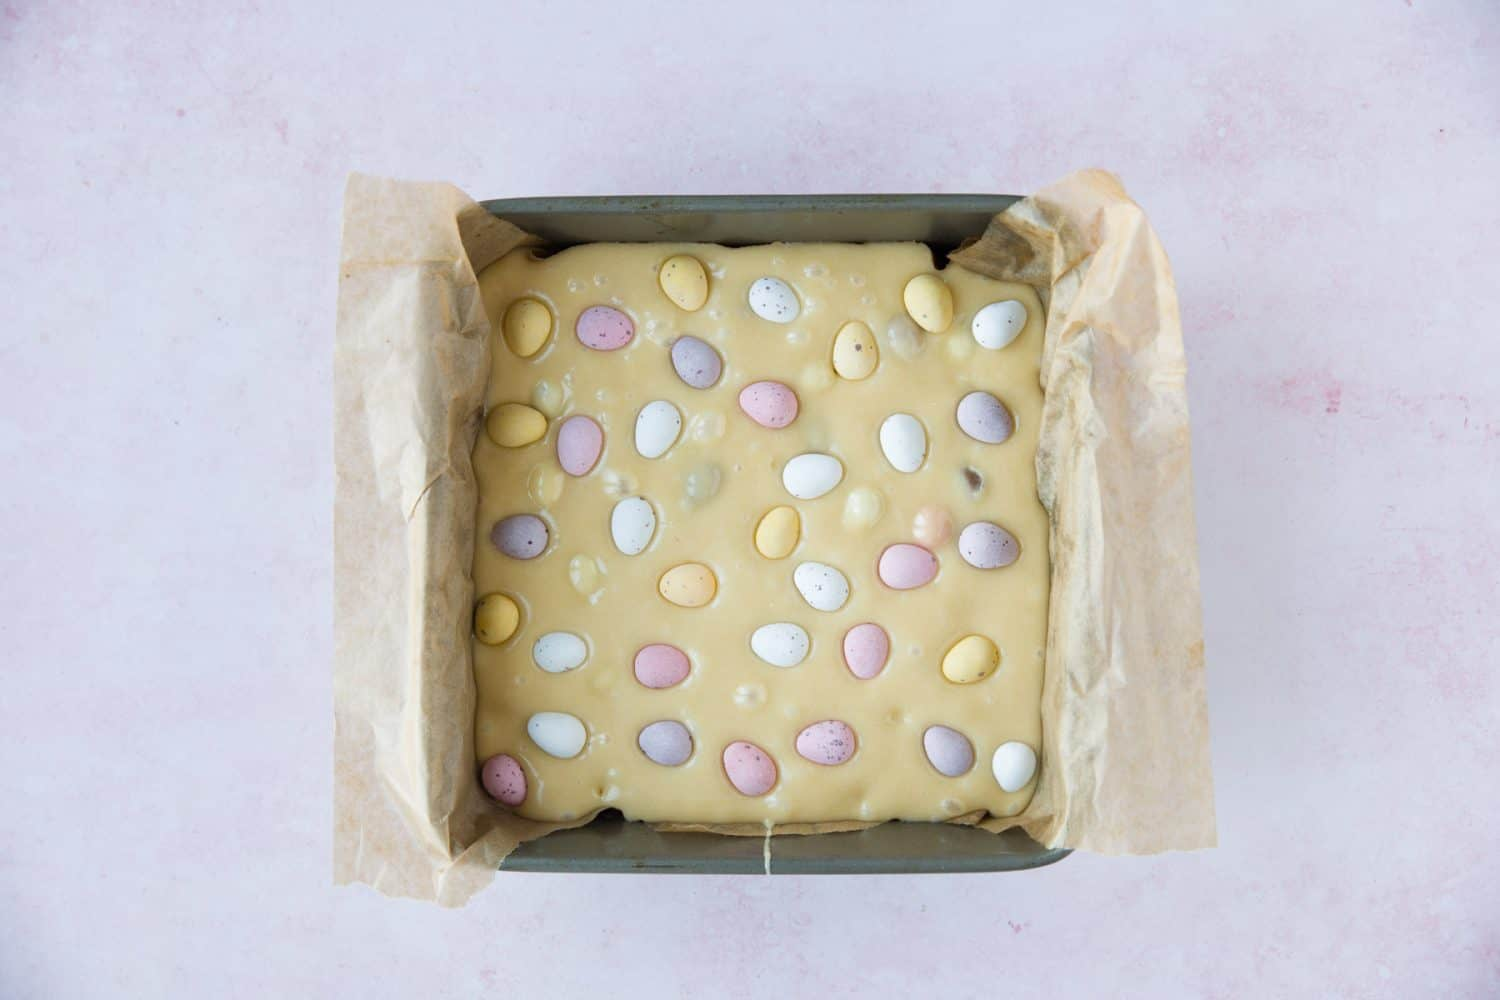 A baking tray containing blondie mixture.